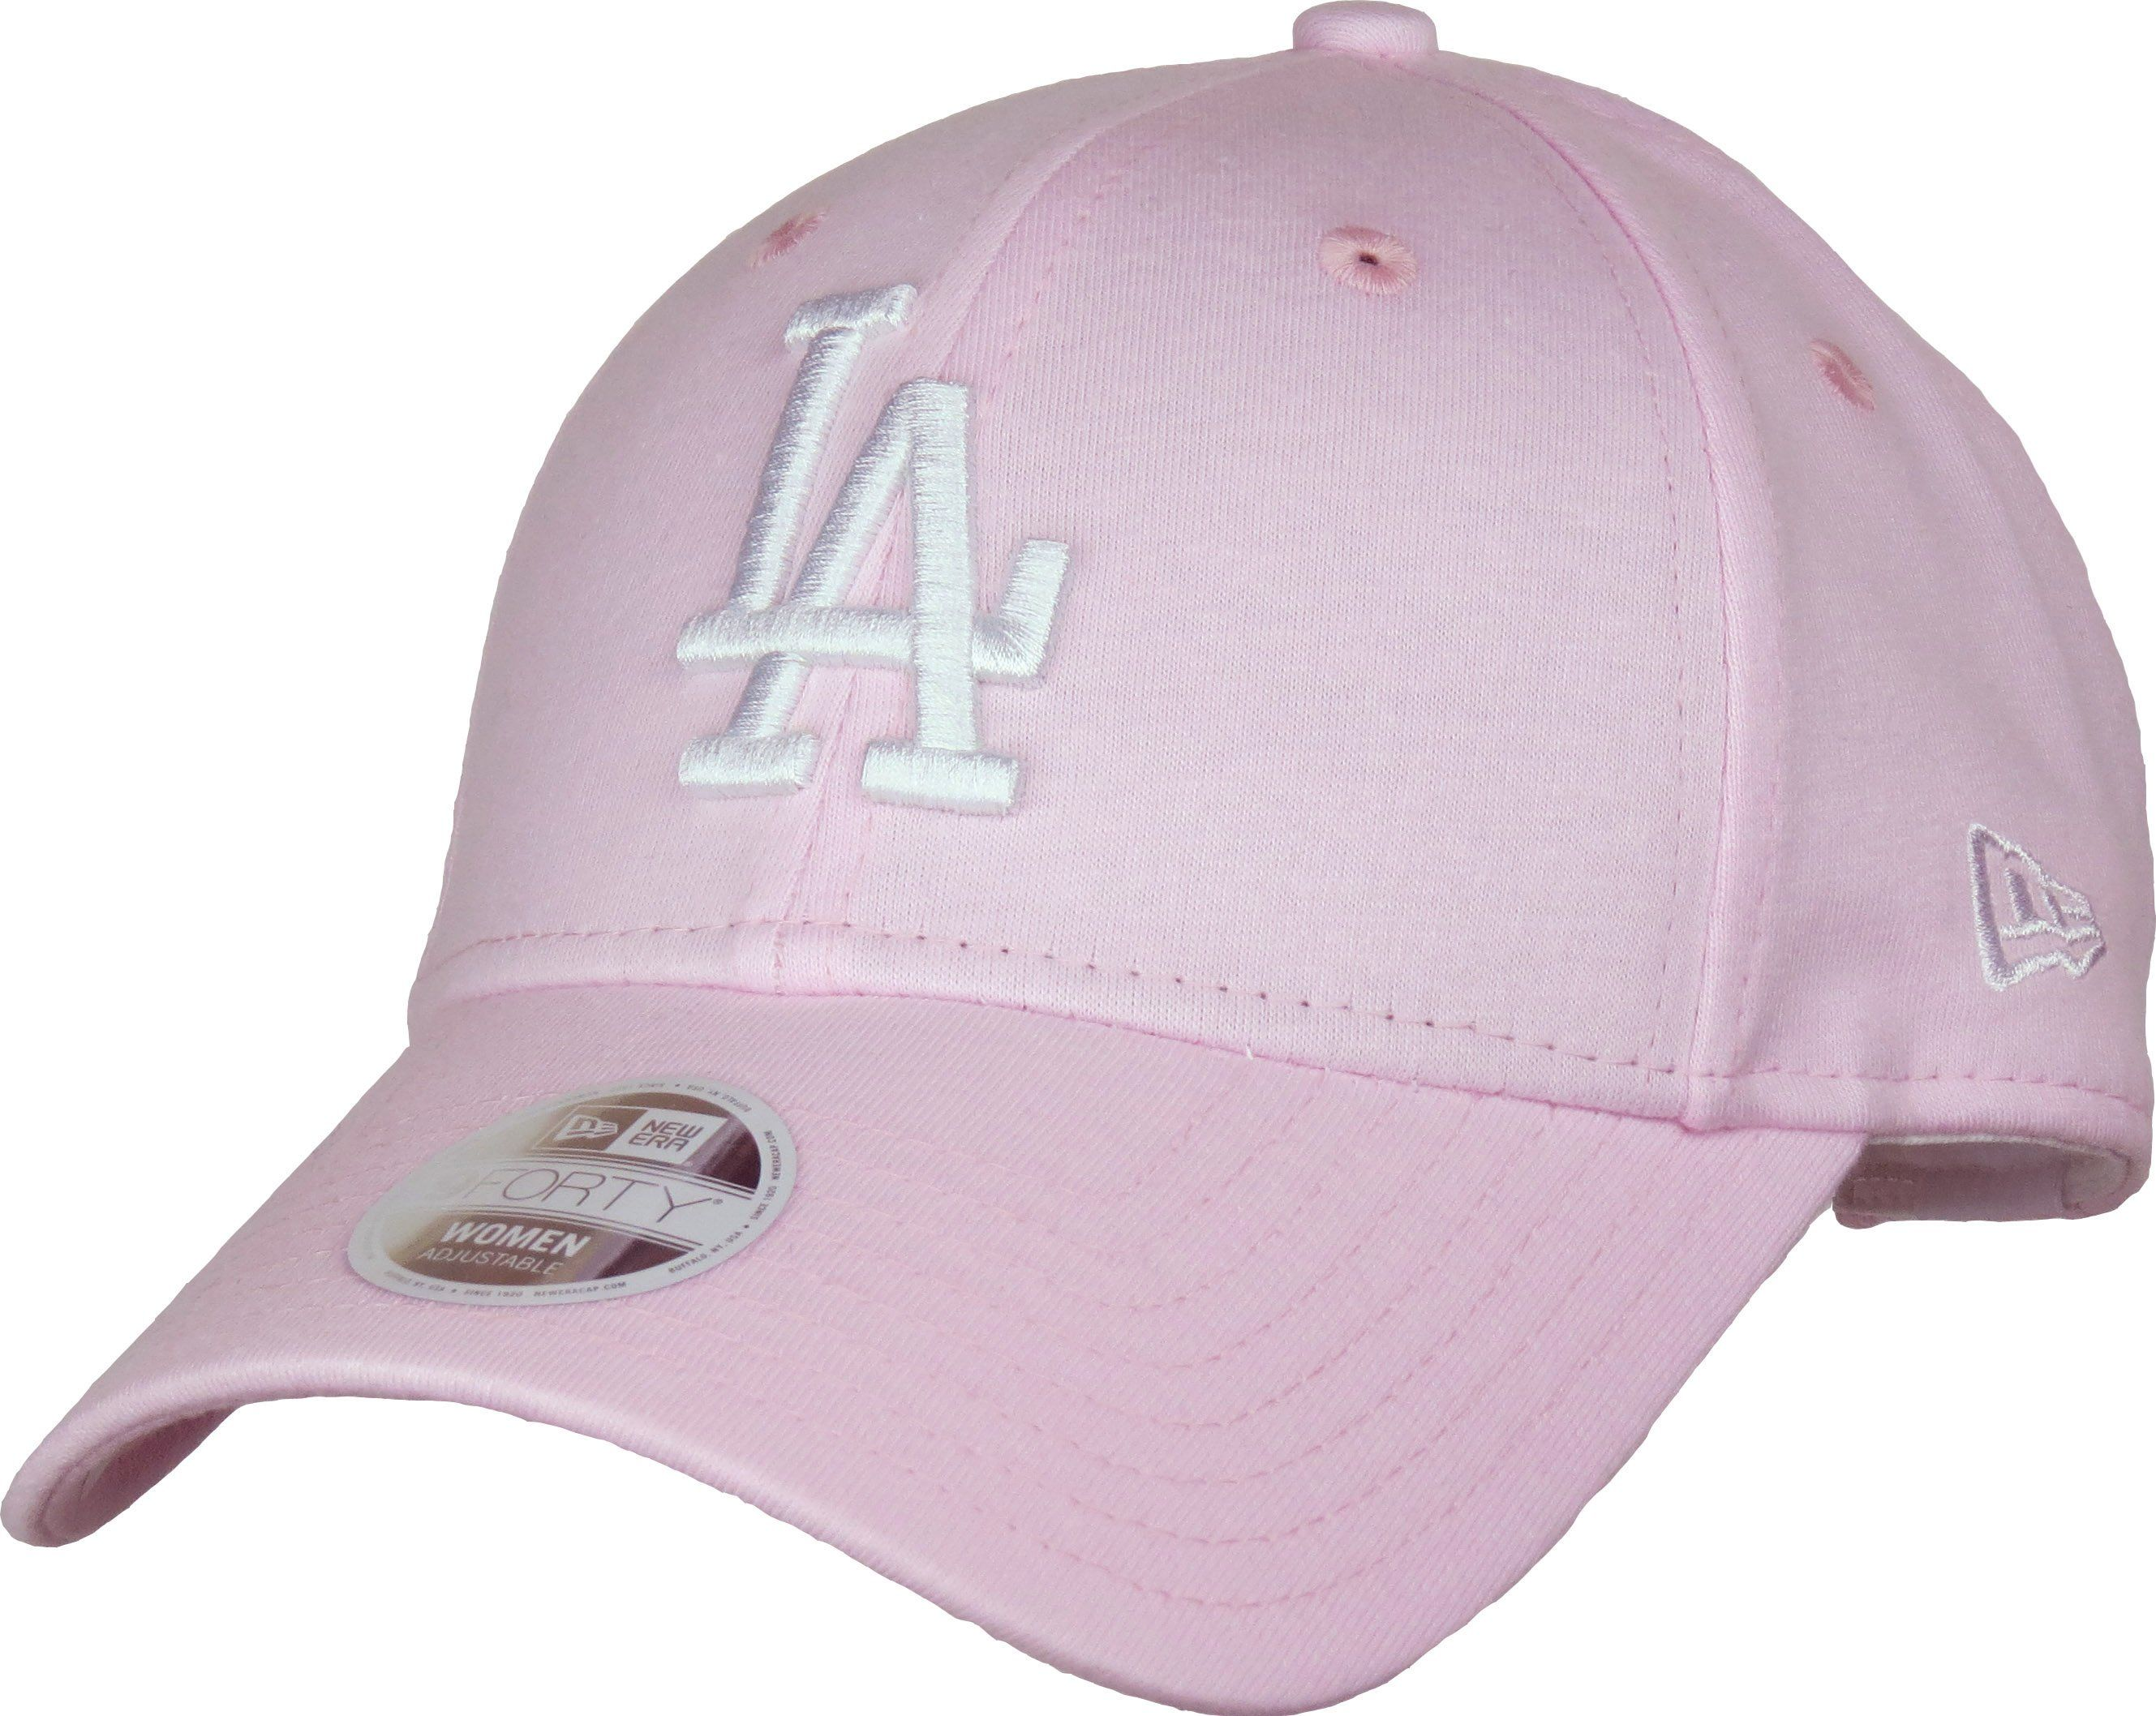 New Era 9Forty Womens Jersey Baseball Cap. Light Pink 50e177b75b73